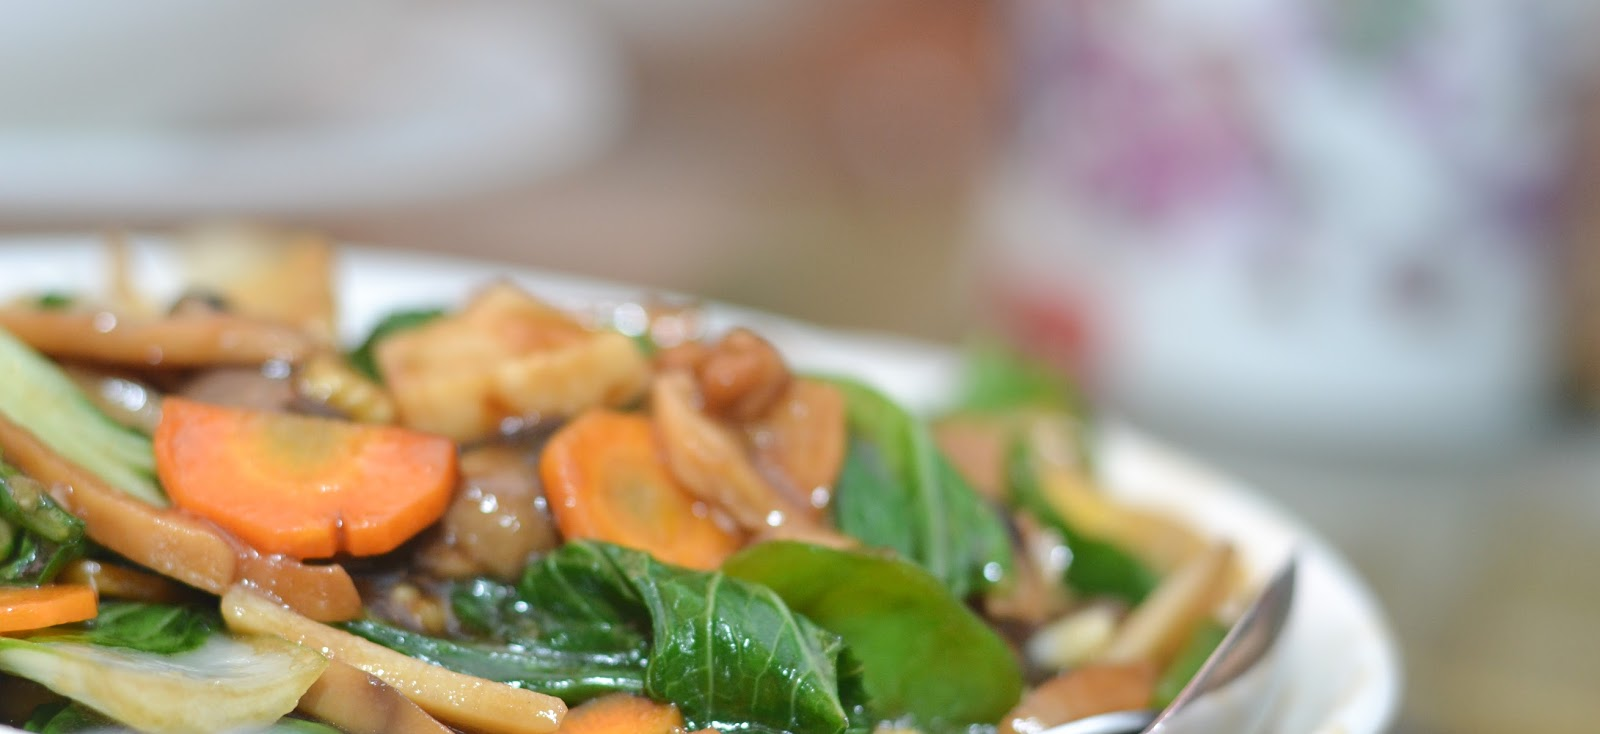 Chinese Vegetables Sauce with Carrots